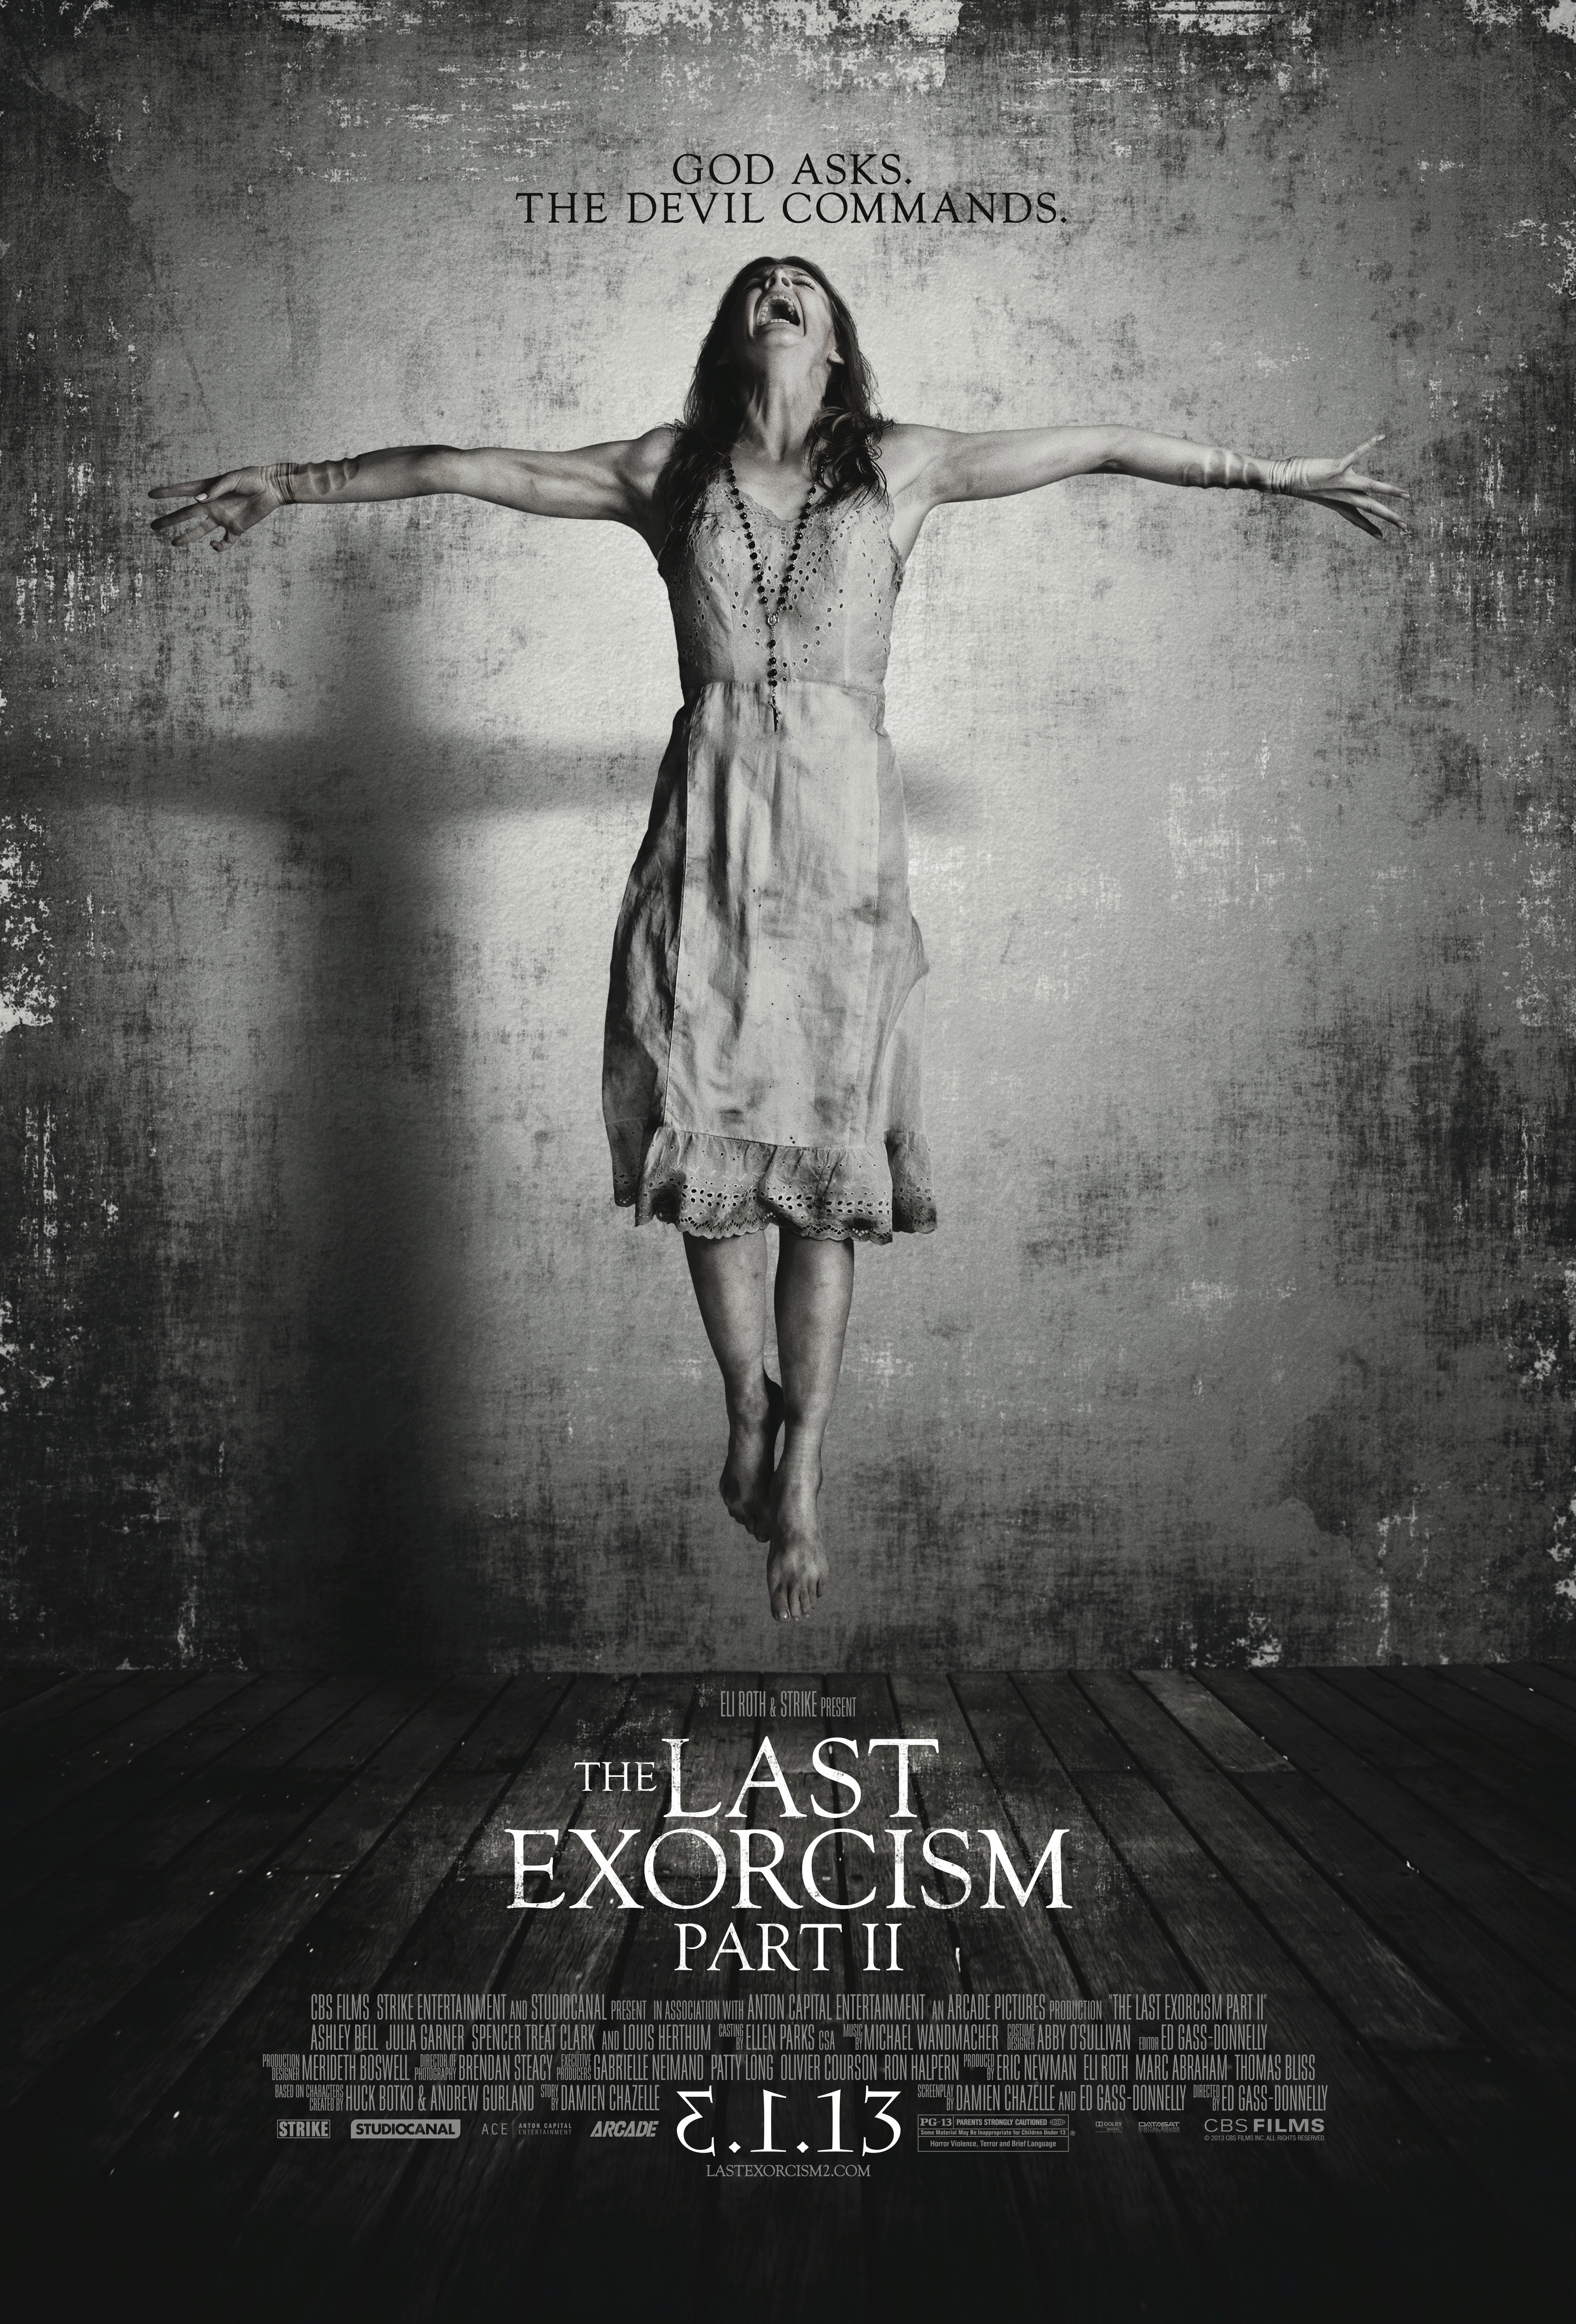 6565 LastExorcism2 1Sheet Hang FM New Poster For The Last Exorcism Part II